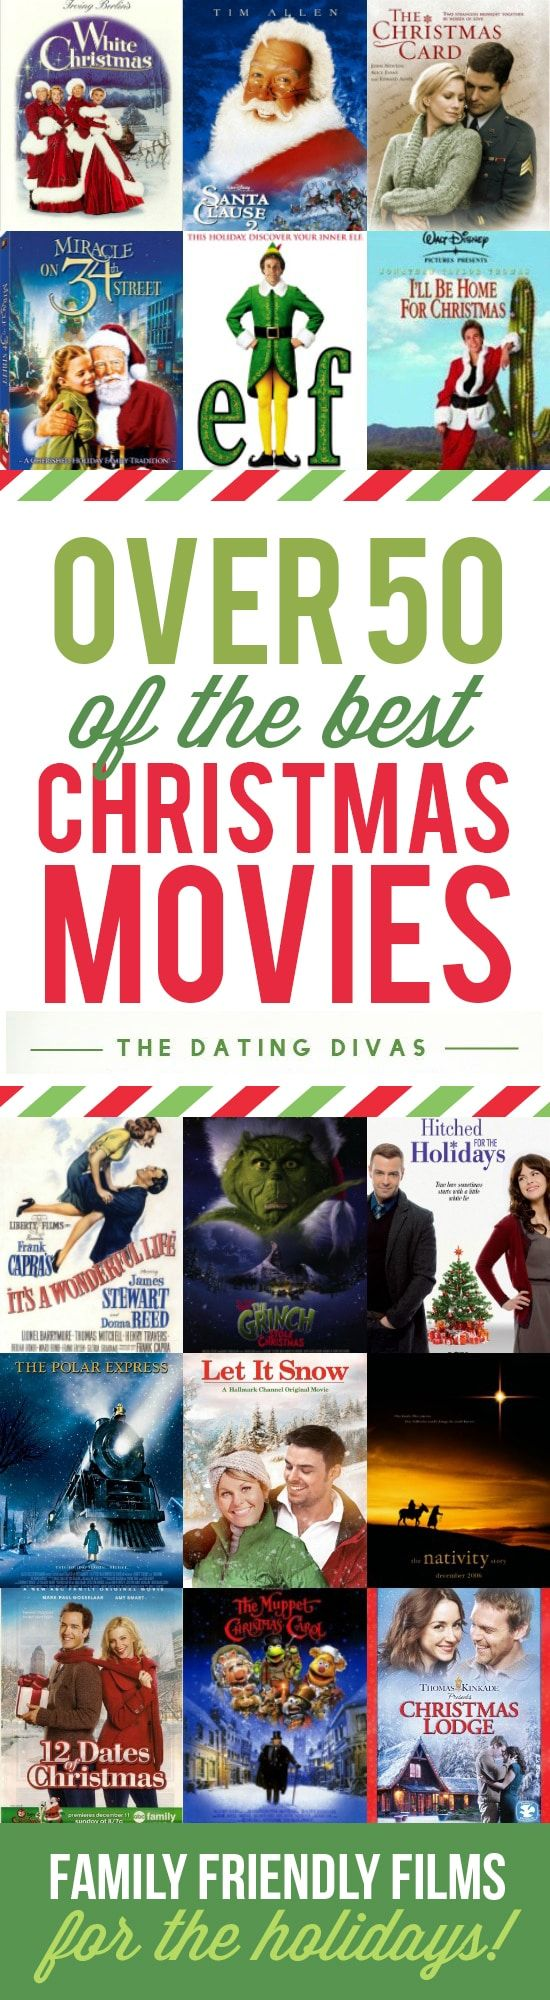 The Best Christmas Movies - many of the Christmas movies listed have links to fun activities, games and more!